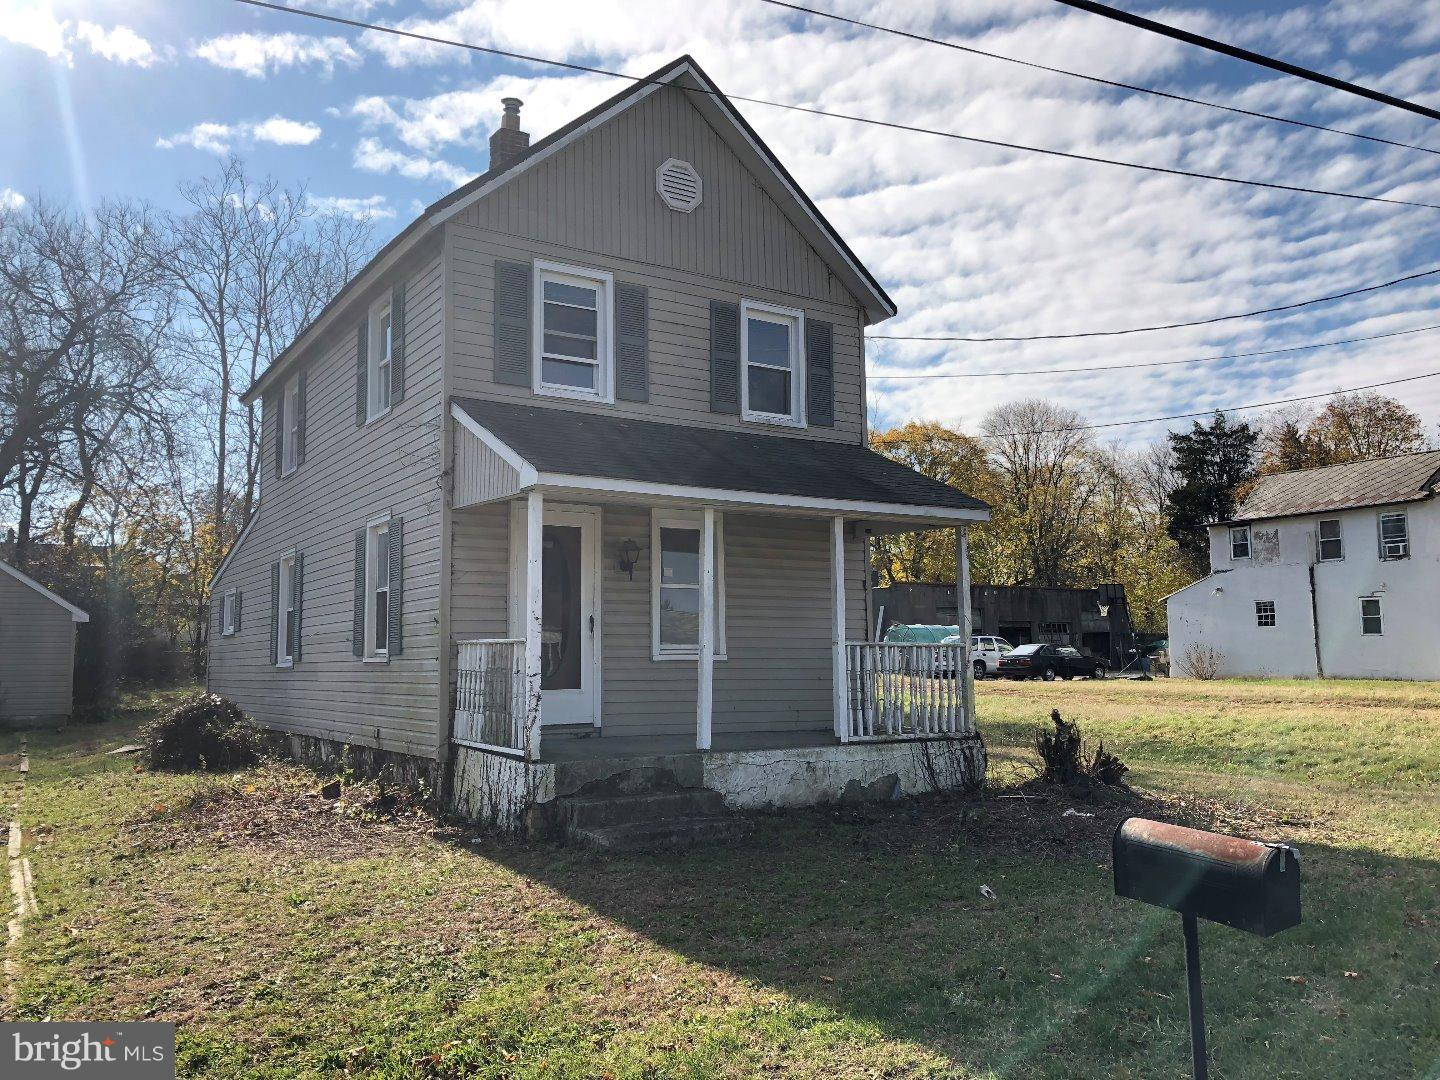 115 E ATLANTIC AVENUE, MINOTOLA, NJ 08341